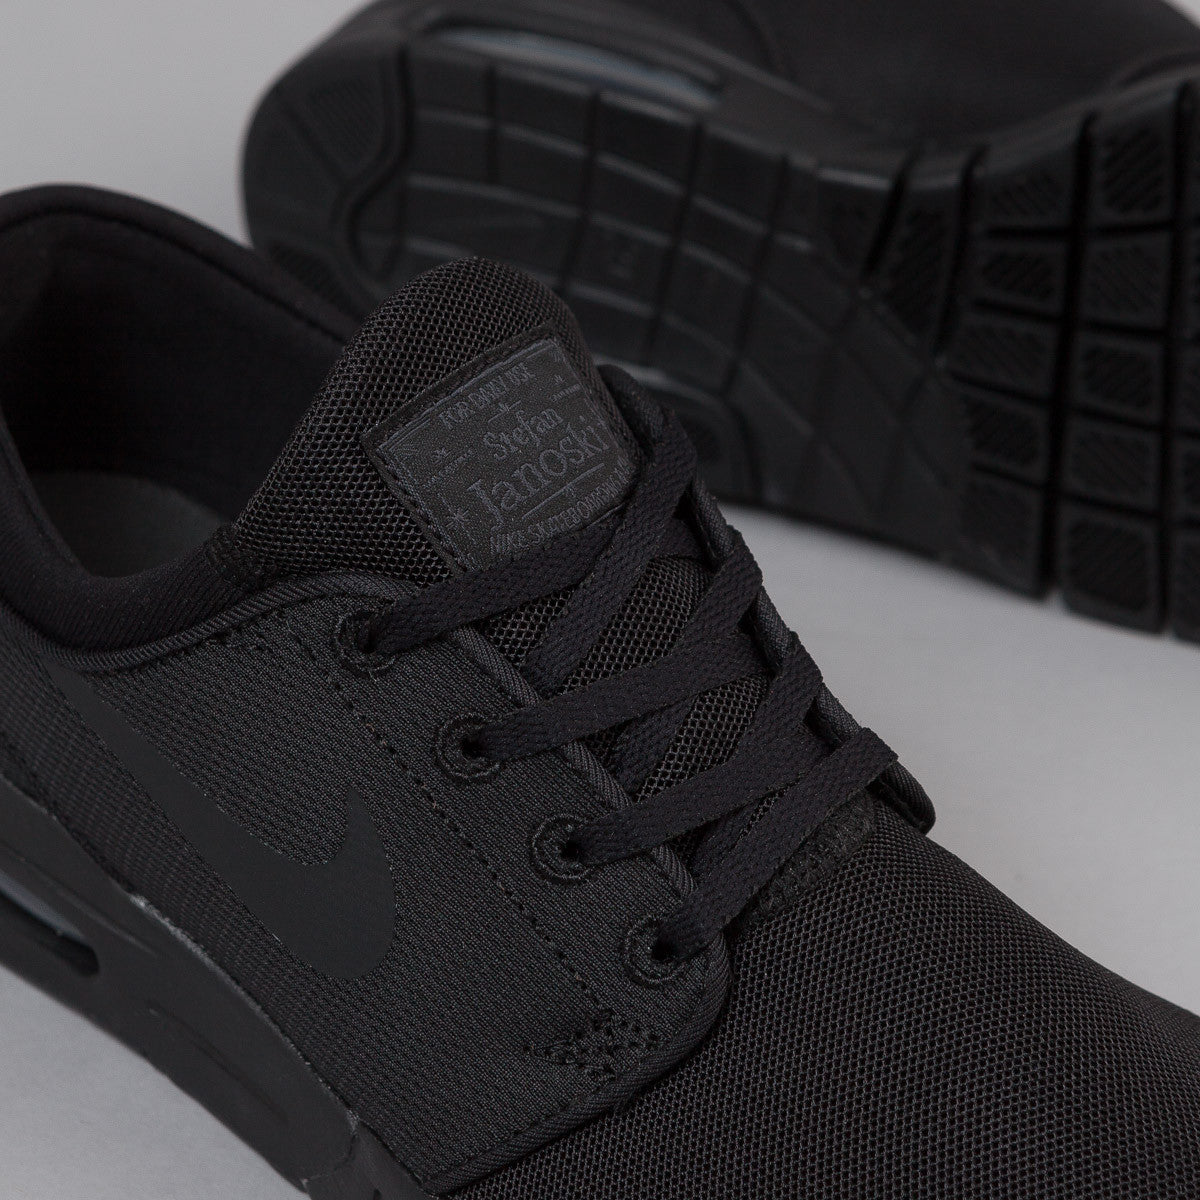 Nike SB Stefan Janoski Max Shoes - Black / Black - Anthracite - Black